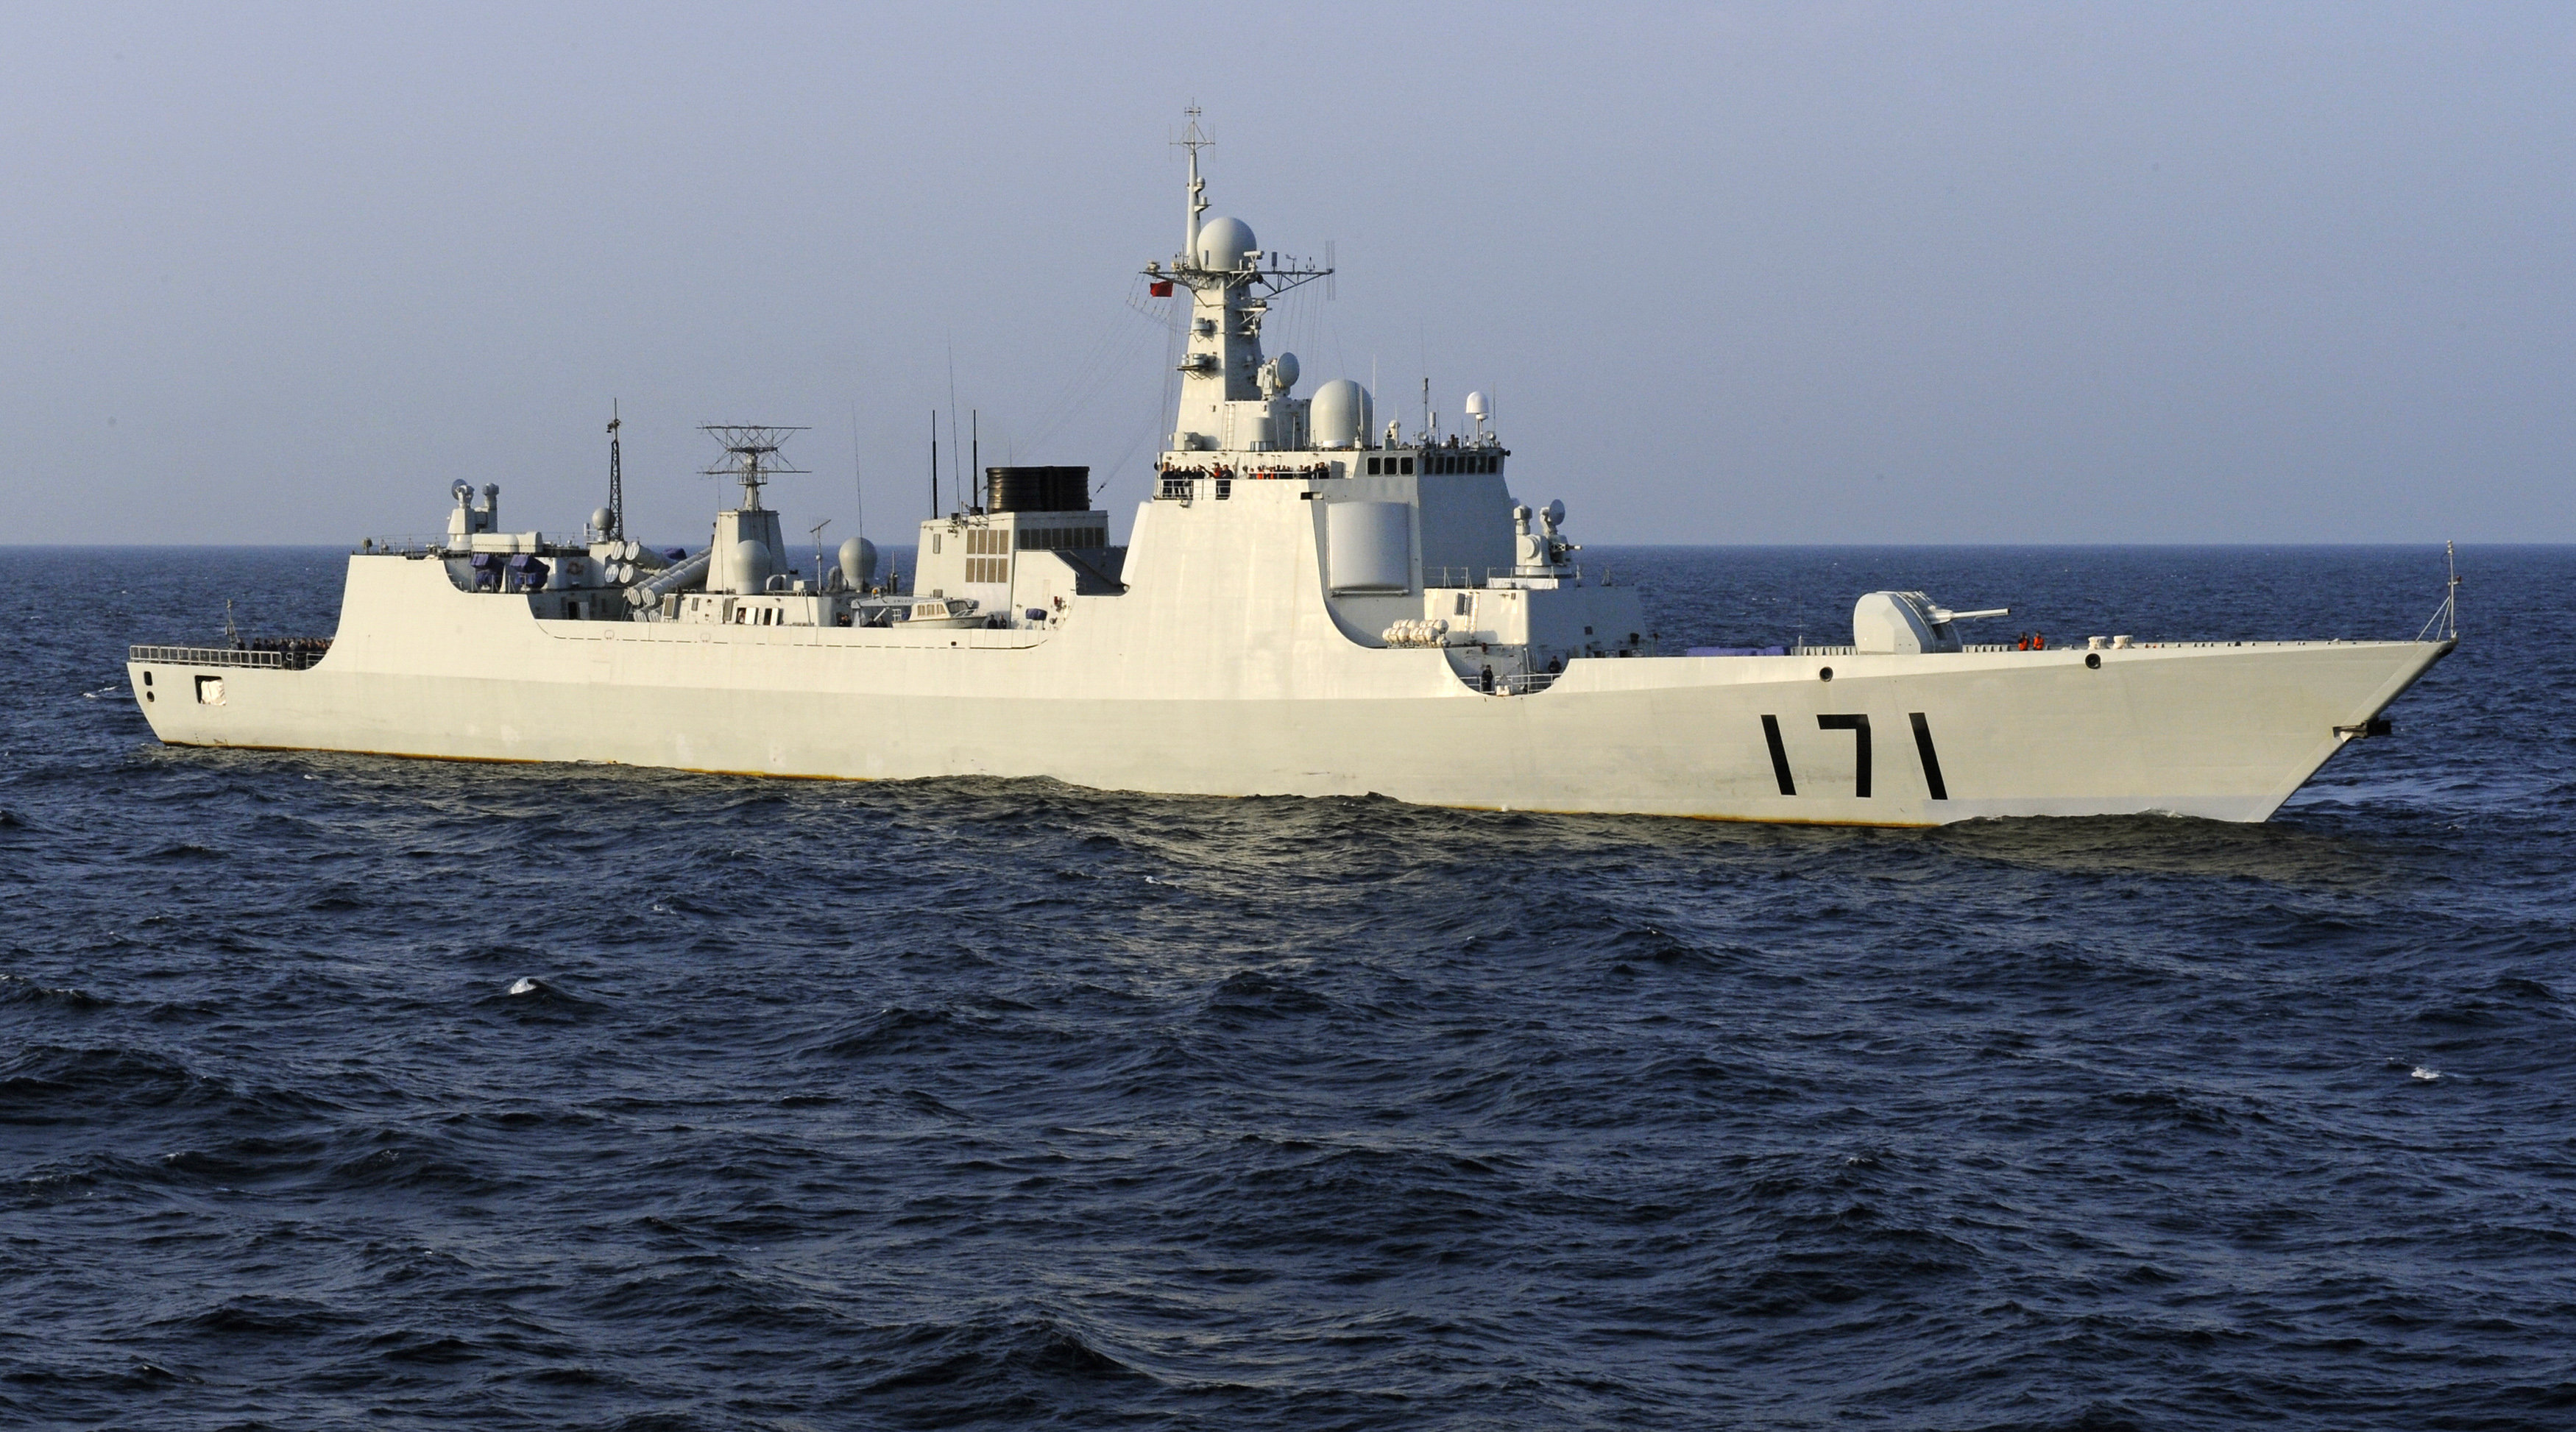 Chinese navy warship, the DDG-171 Haikou destroyer, patrols the waters of the Gulf of Aden (file photo)